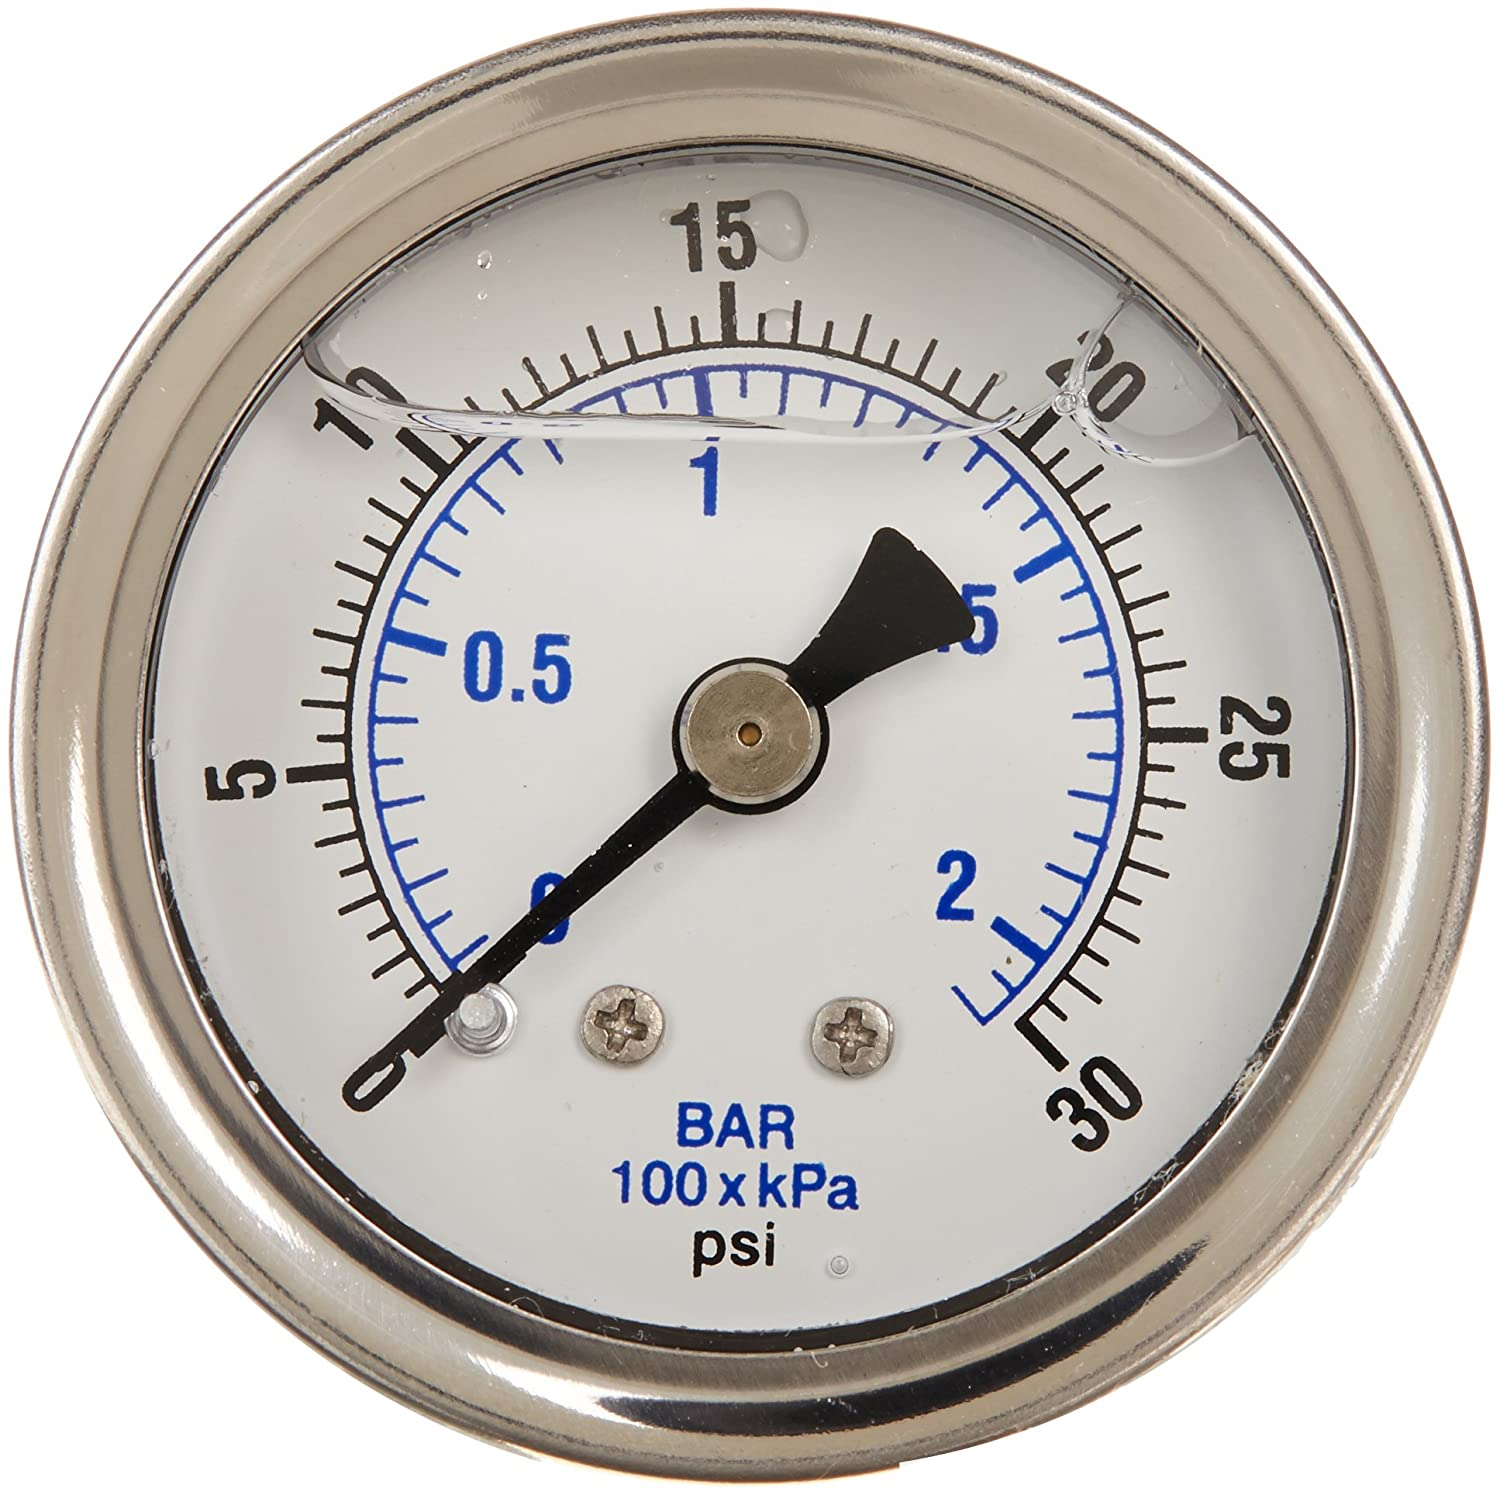 PIC Gauge 202L 158C 1.5 Dial 0 30 psi Range 1 8 Male NPT Connection Size Center Back Mount Glycerine Filled Pressure Gauge with a Stainless Steel Case Brass Internals Stainless Steel Bezel and Polycarbonate Lens